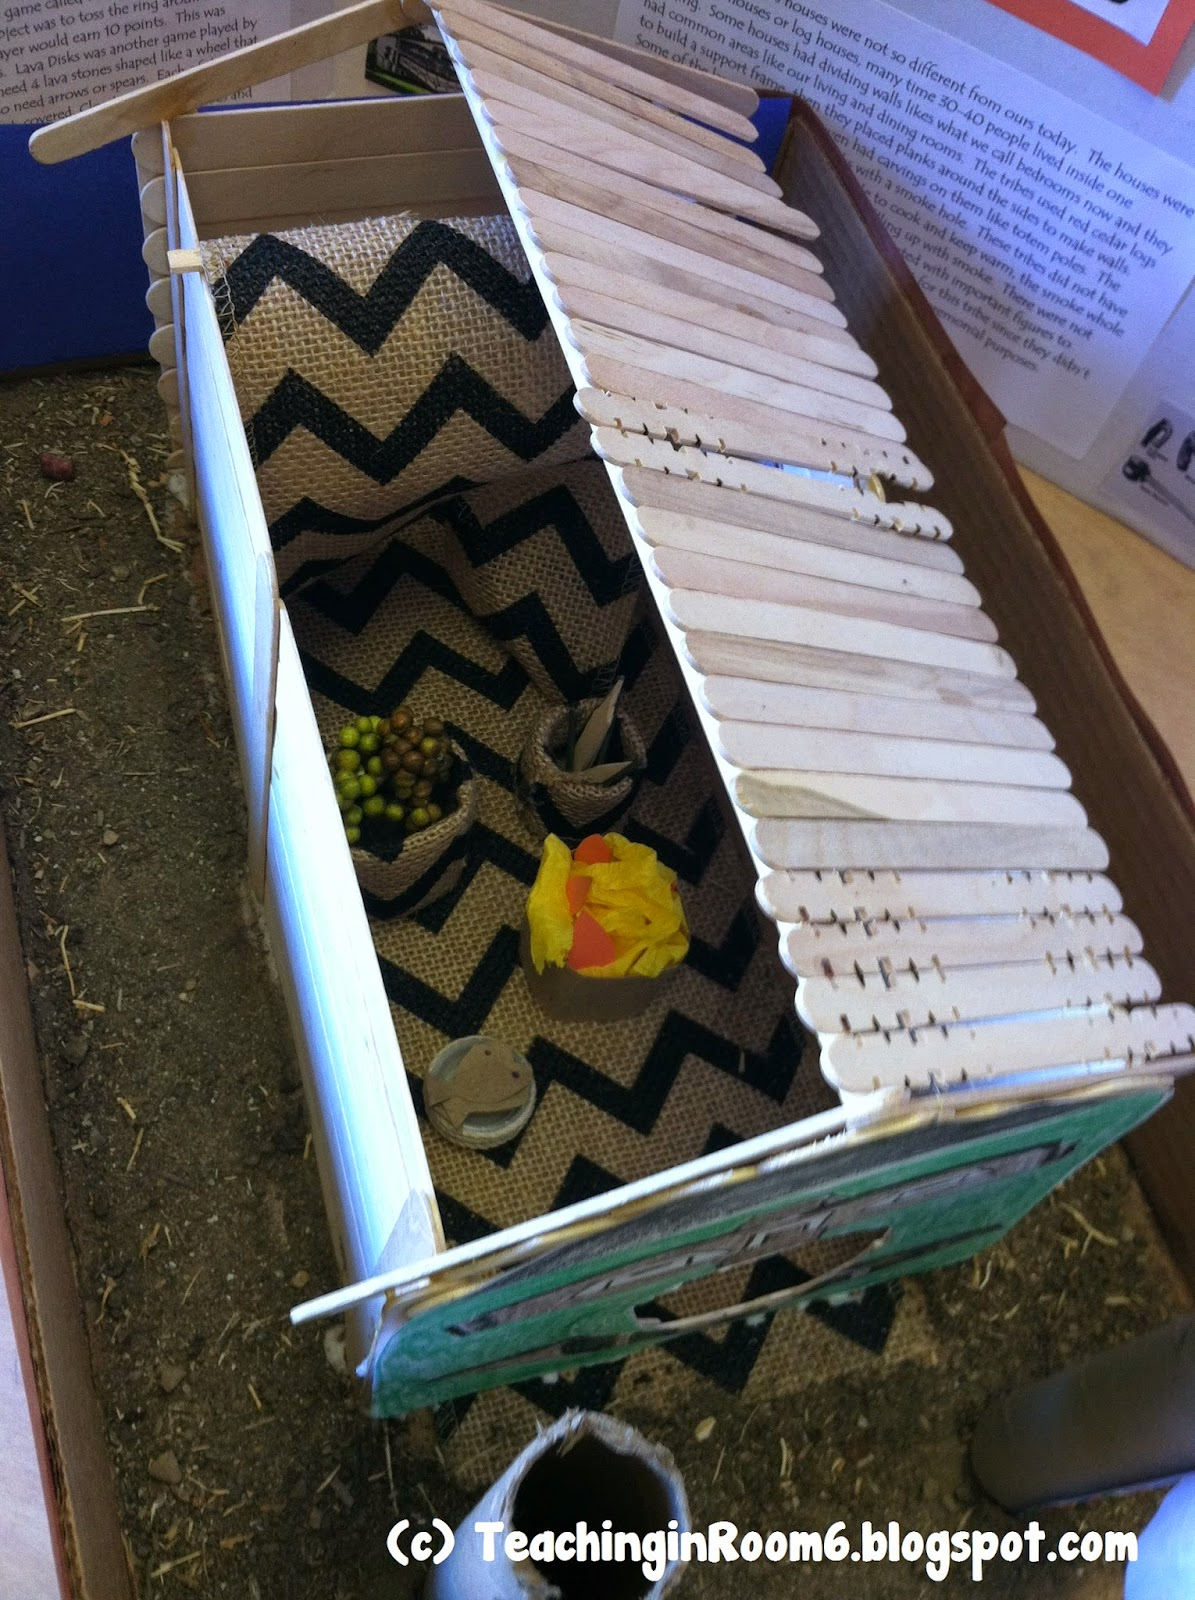 This Pre-Columbian Plank House was created by a 5th grade student.  It has a cut away on the roof to allow people to see the crafts of the tribe inside.